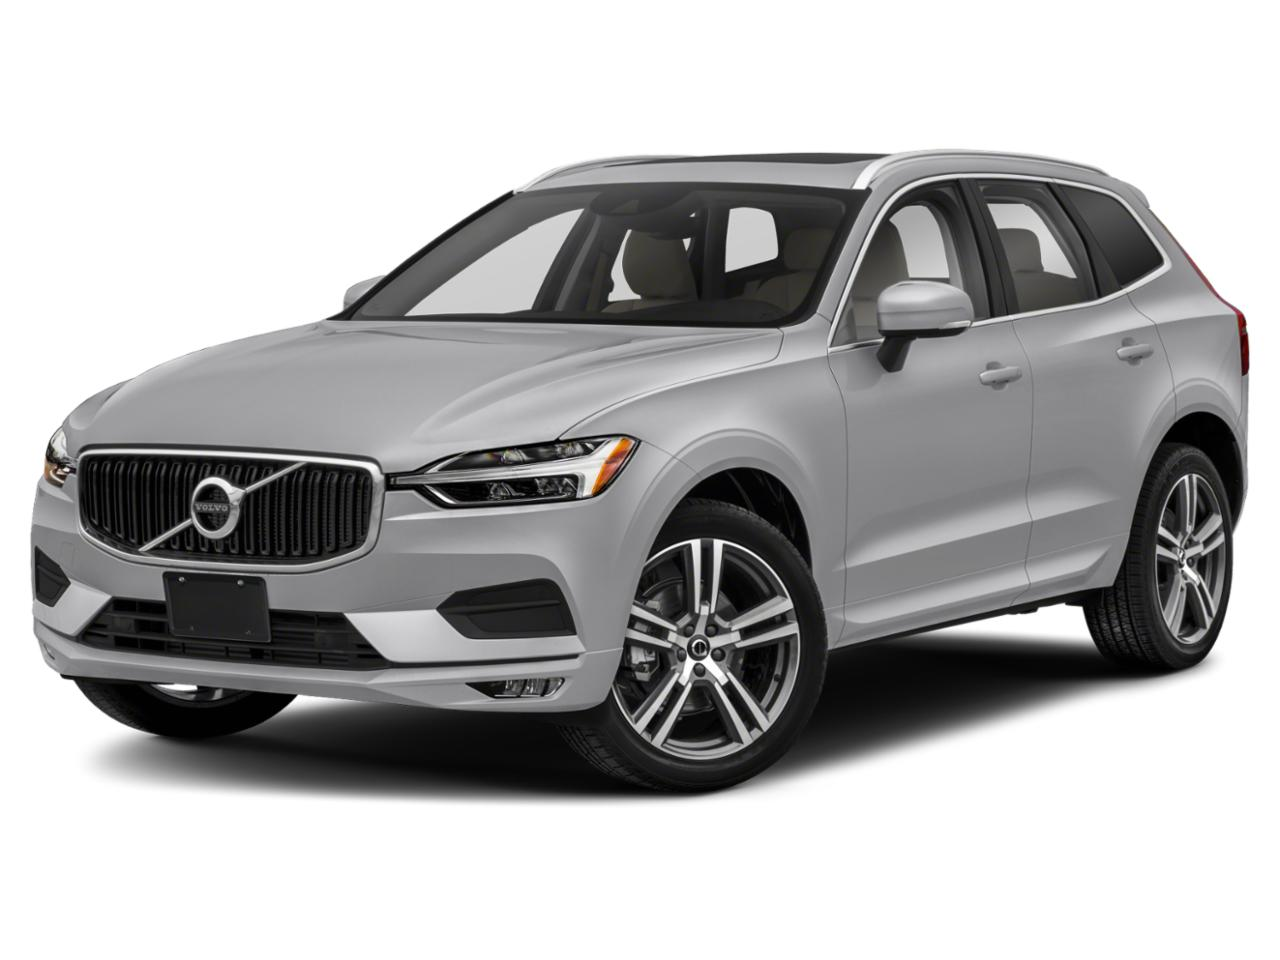 2021 Volvo XC60 Vehicle Photo in Grapevine, TX 76051